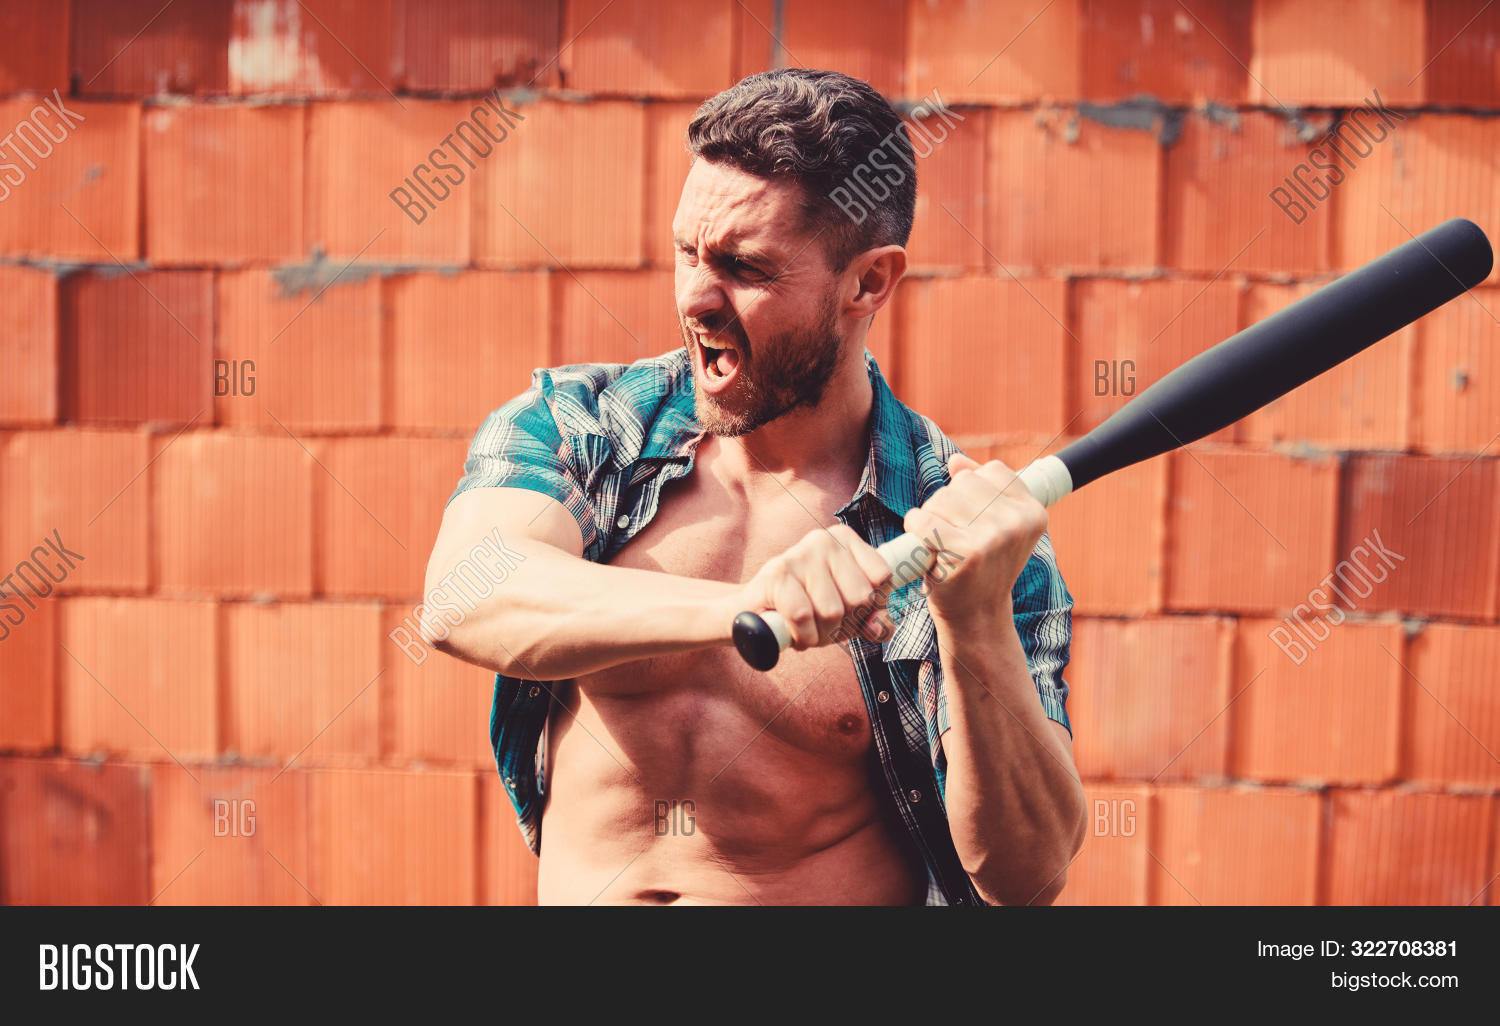 aggression,anger,attack,background,baseball,bat,beard,bearded,black,brick,bully,carry,caucasian,concept,confident,crime,criminal,cudgel,danger,dangerous,energy,face,feel,guy,his,hold,hooligan,mad,man,muscular,my,power,principle,ruin,sport,strength,strong,temper,torso,unshaven,wall,weapon